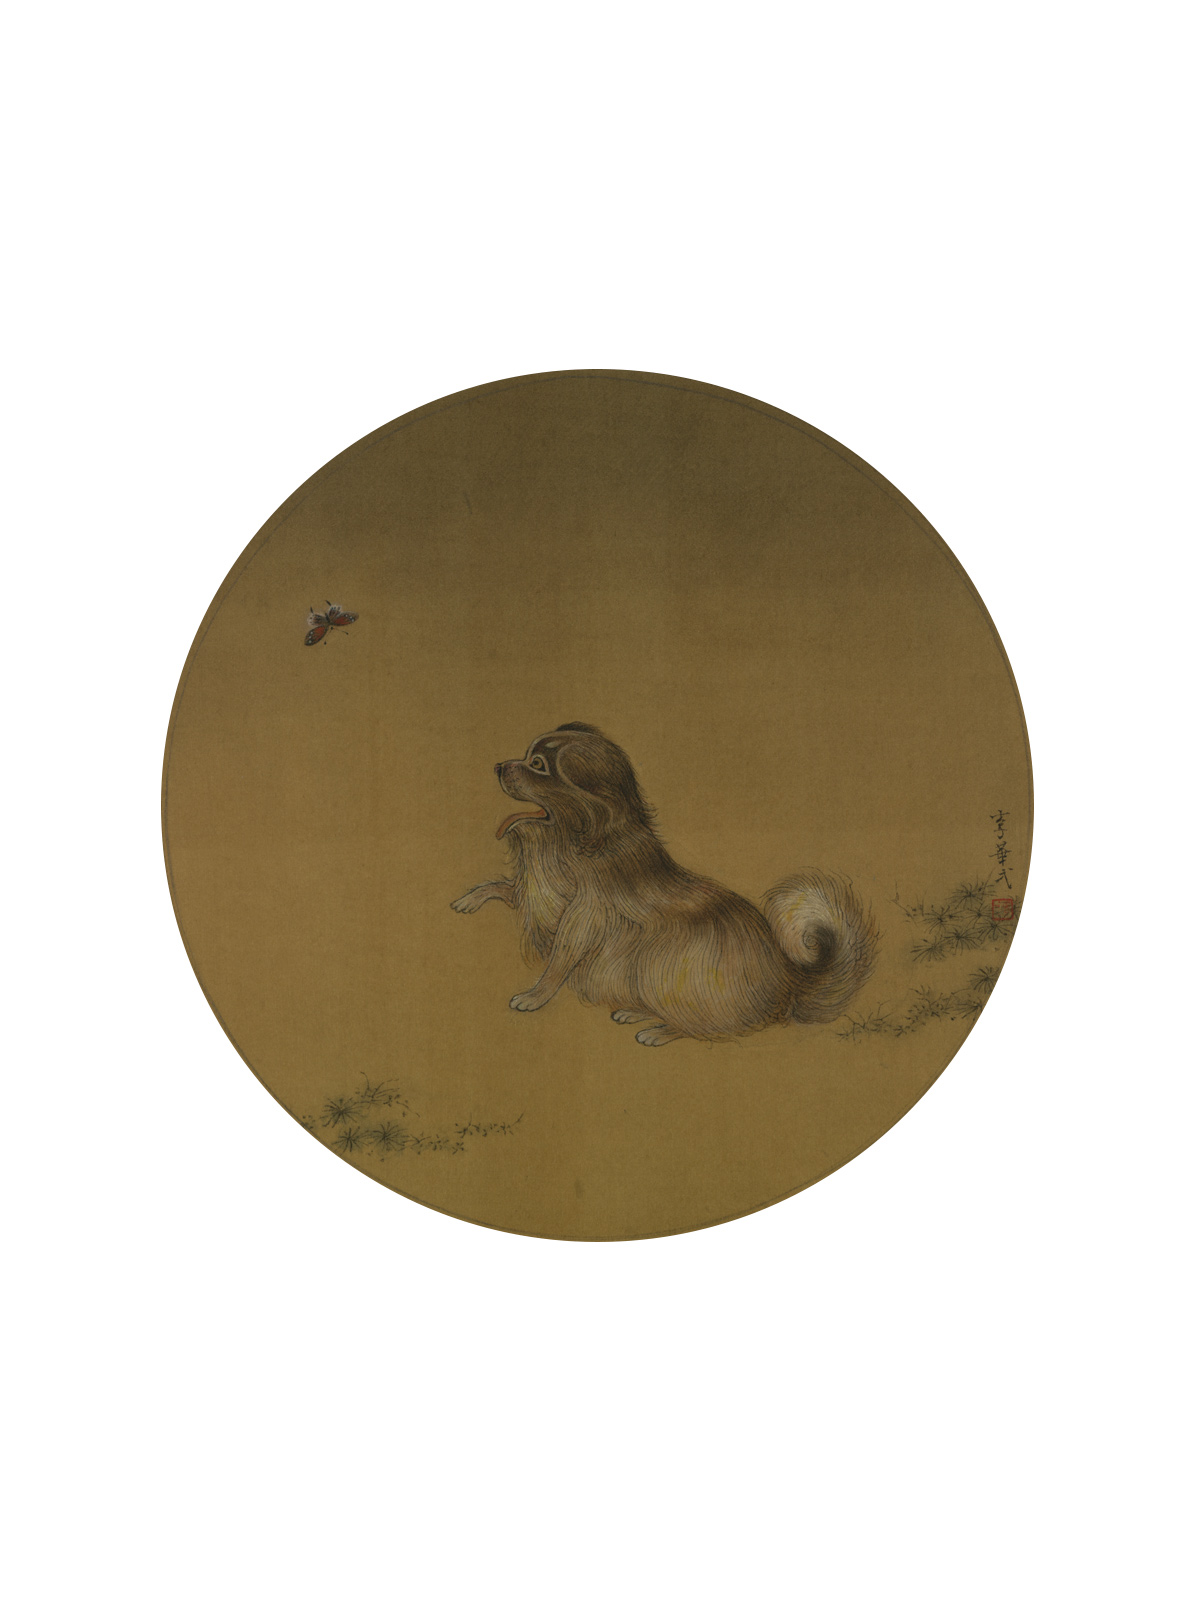 The Twelve Animals of the Zodiac by Li Huayi